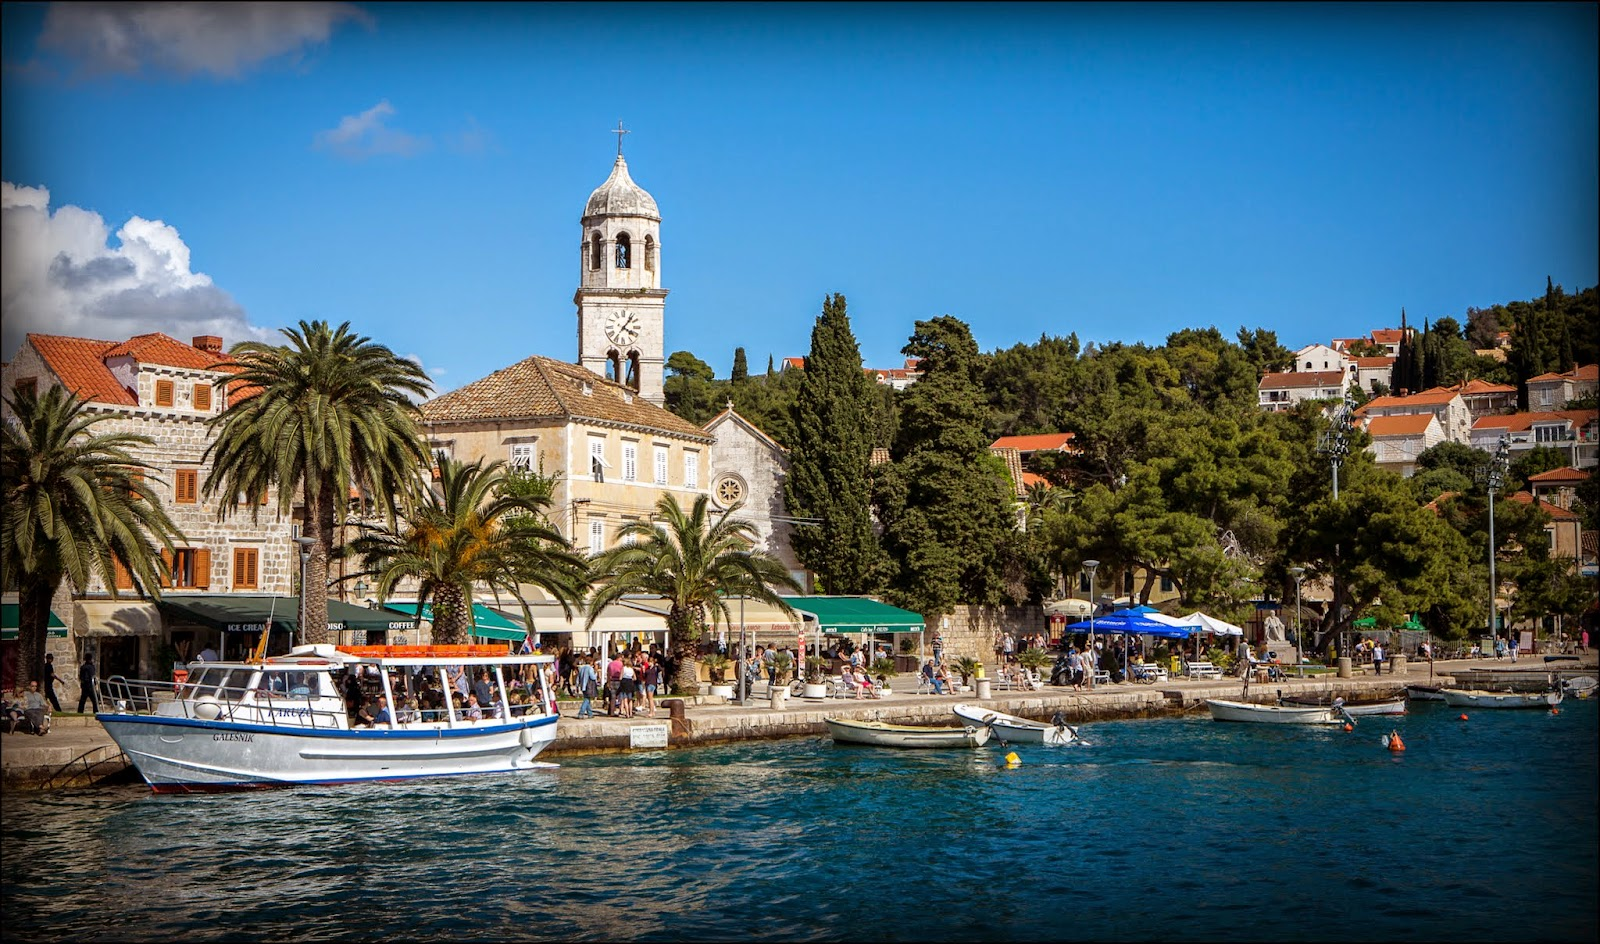 A picture perfect wedding in Cavtat, Emma and Daniel's big day ...